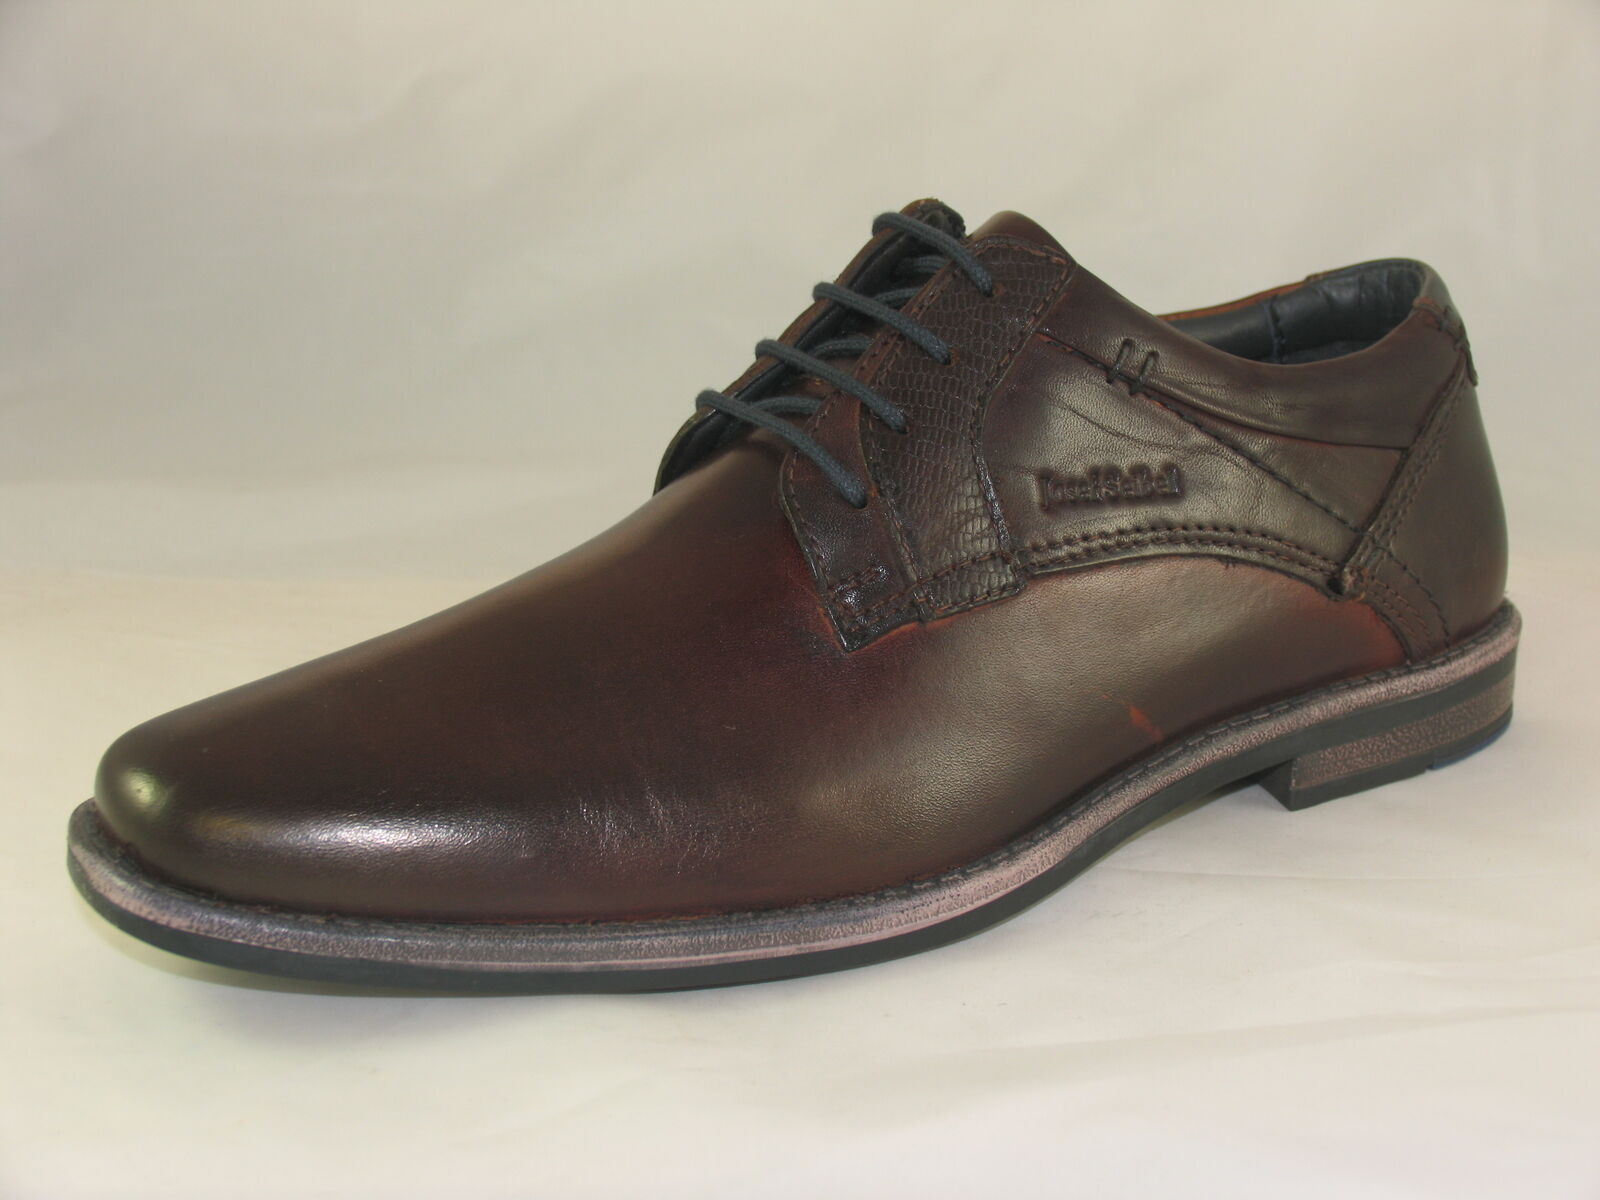 Mens Josef Seibel Andrew 21 Smart Lace-up shoes